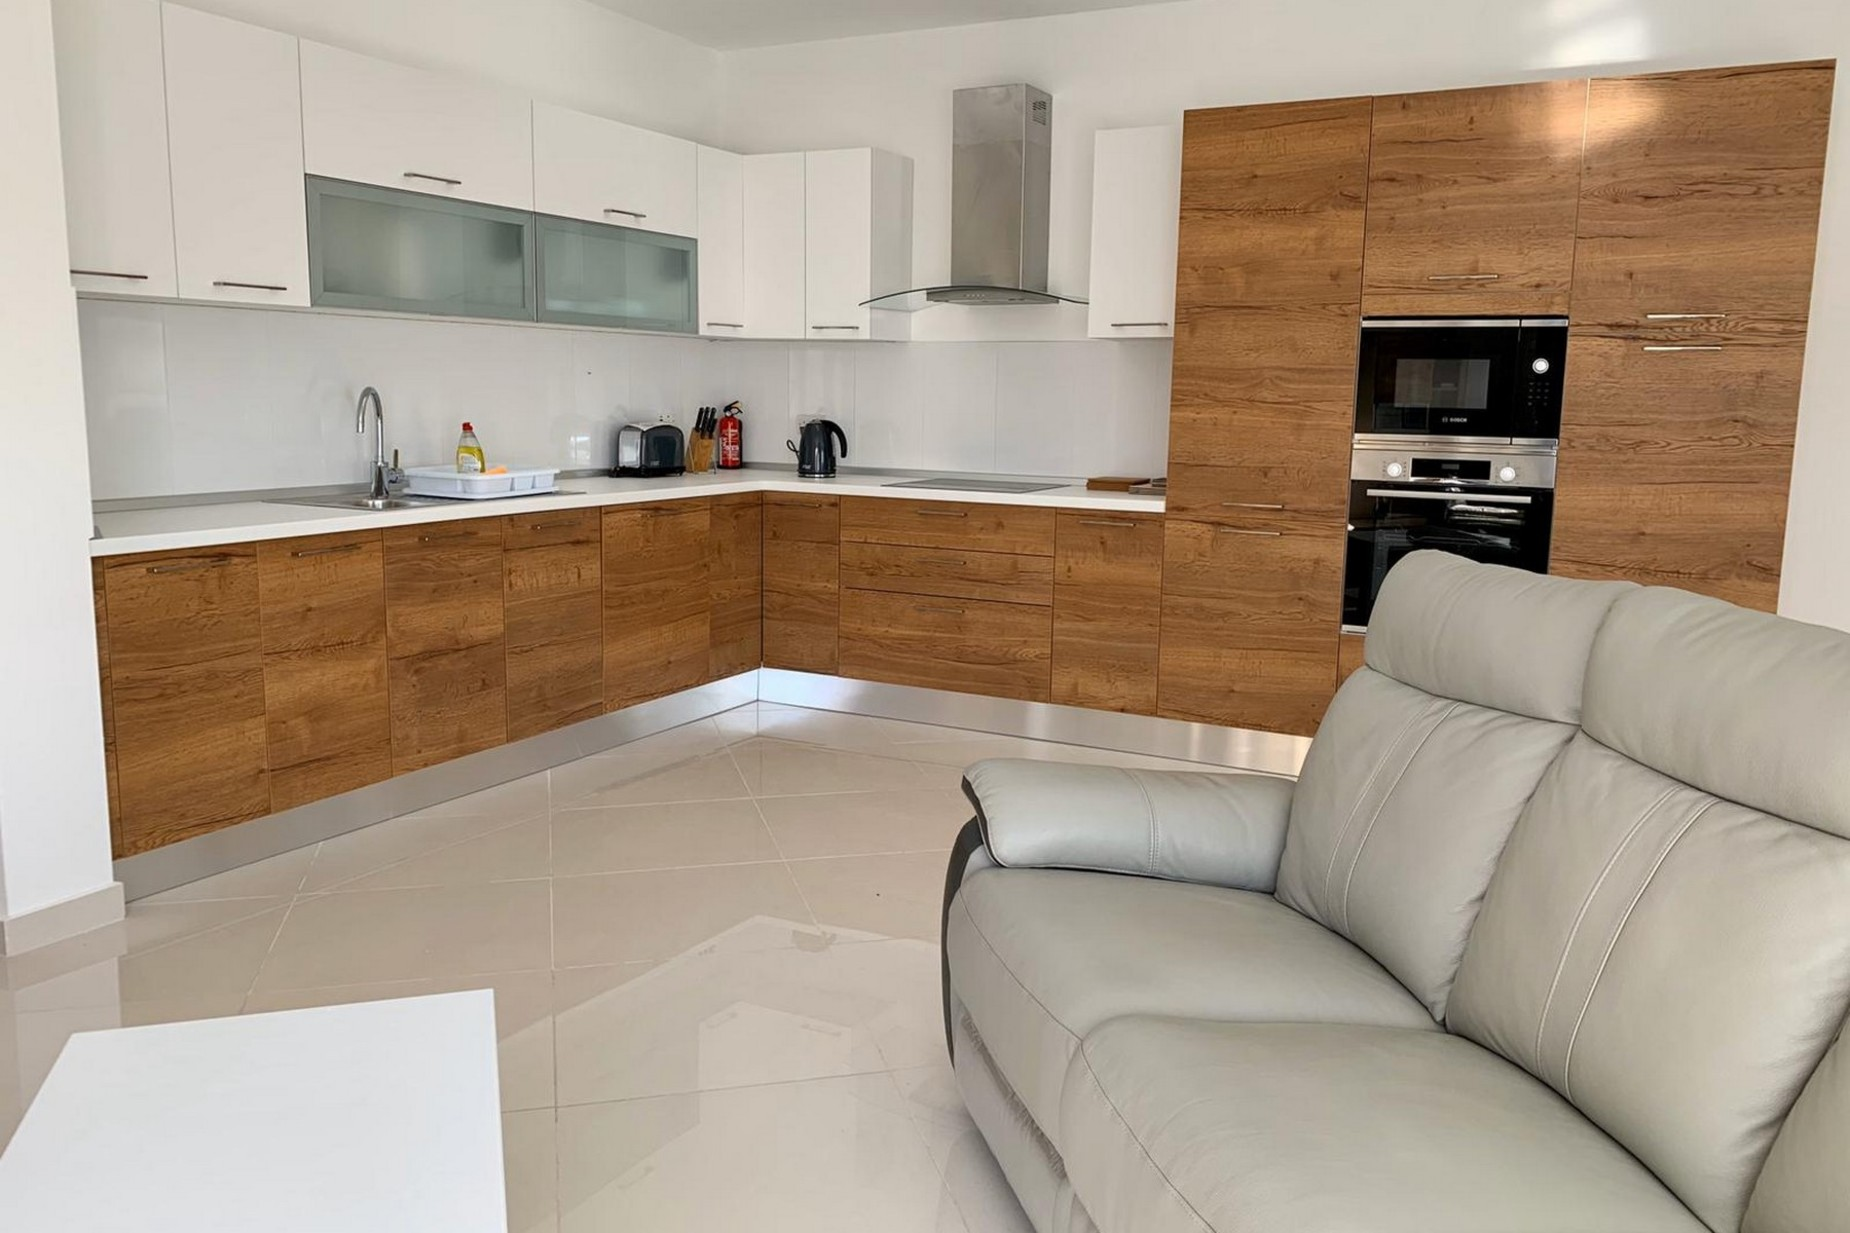 3 bed Apartment For Rent in Swieqi, Swieqi - thumb 2